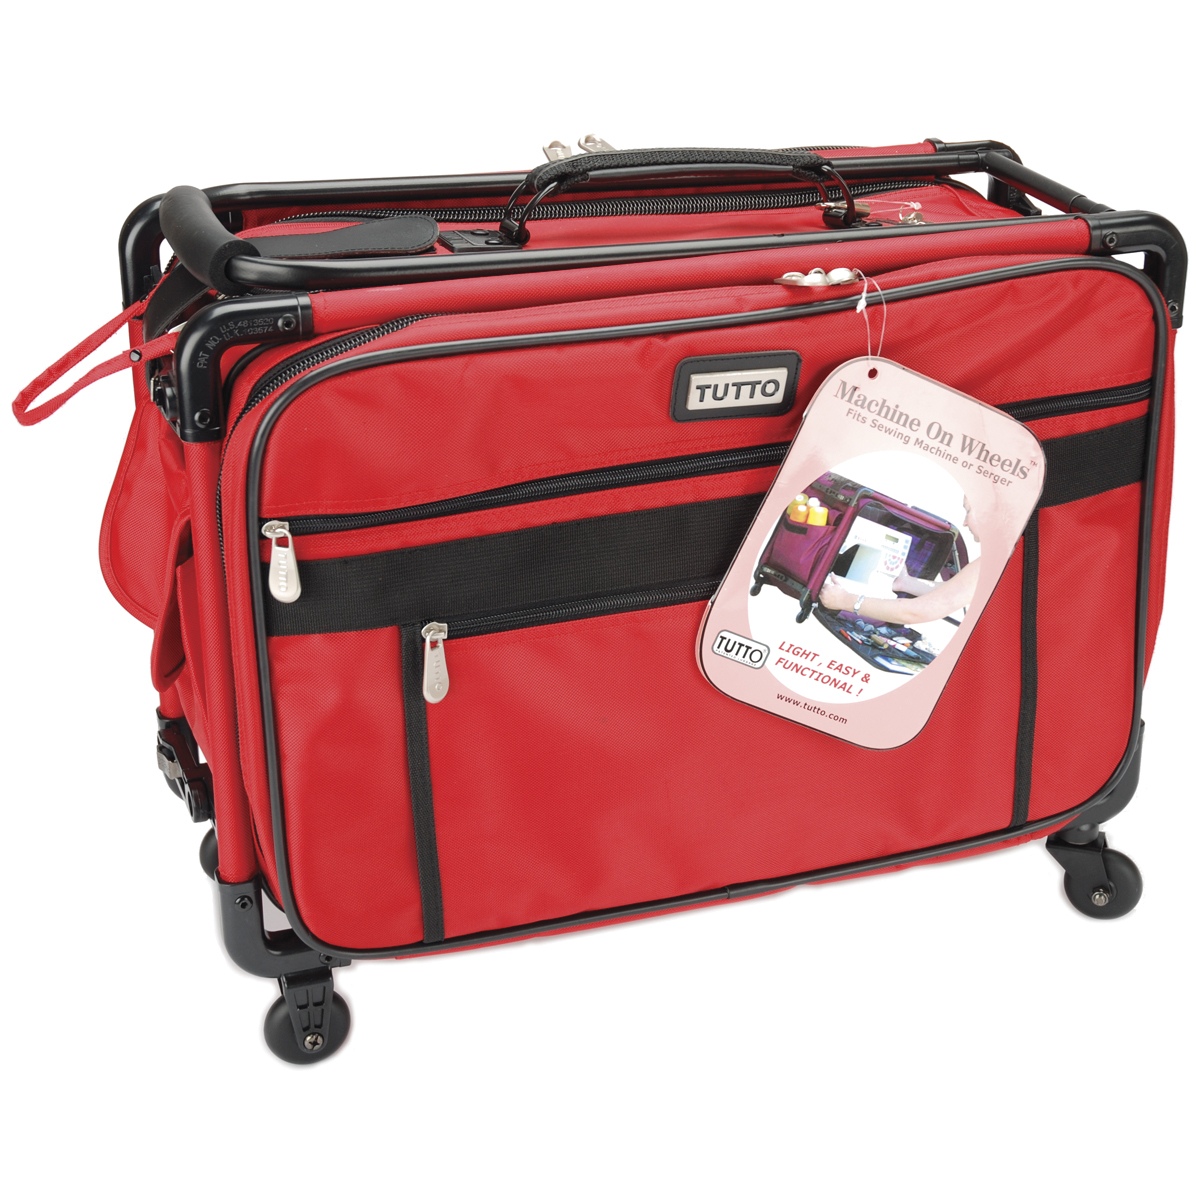 "TUTTO Machine On Wheels Case-20""X13""X9"" Red"